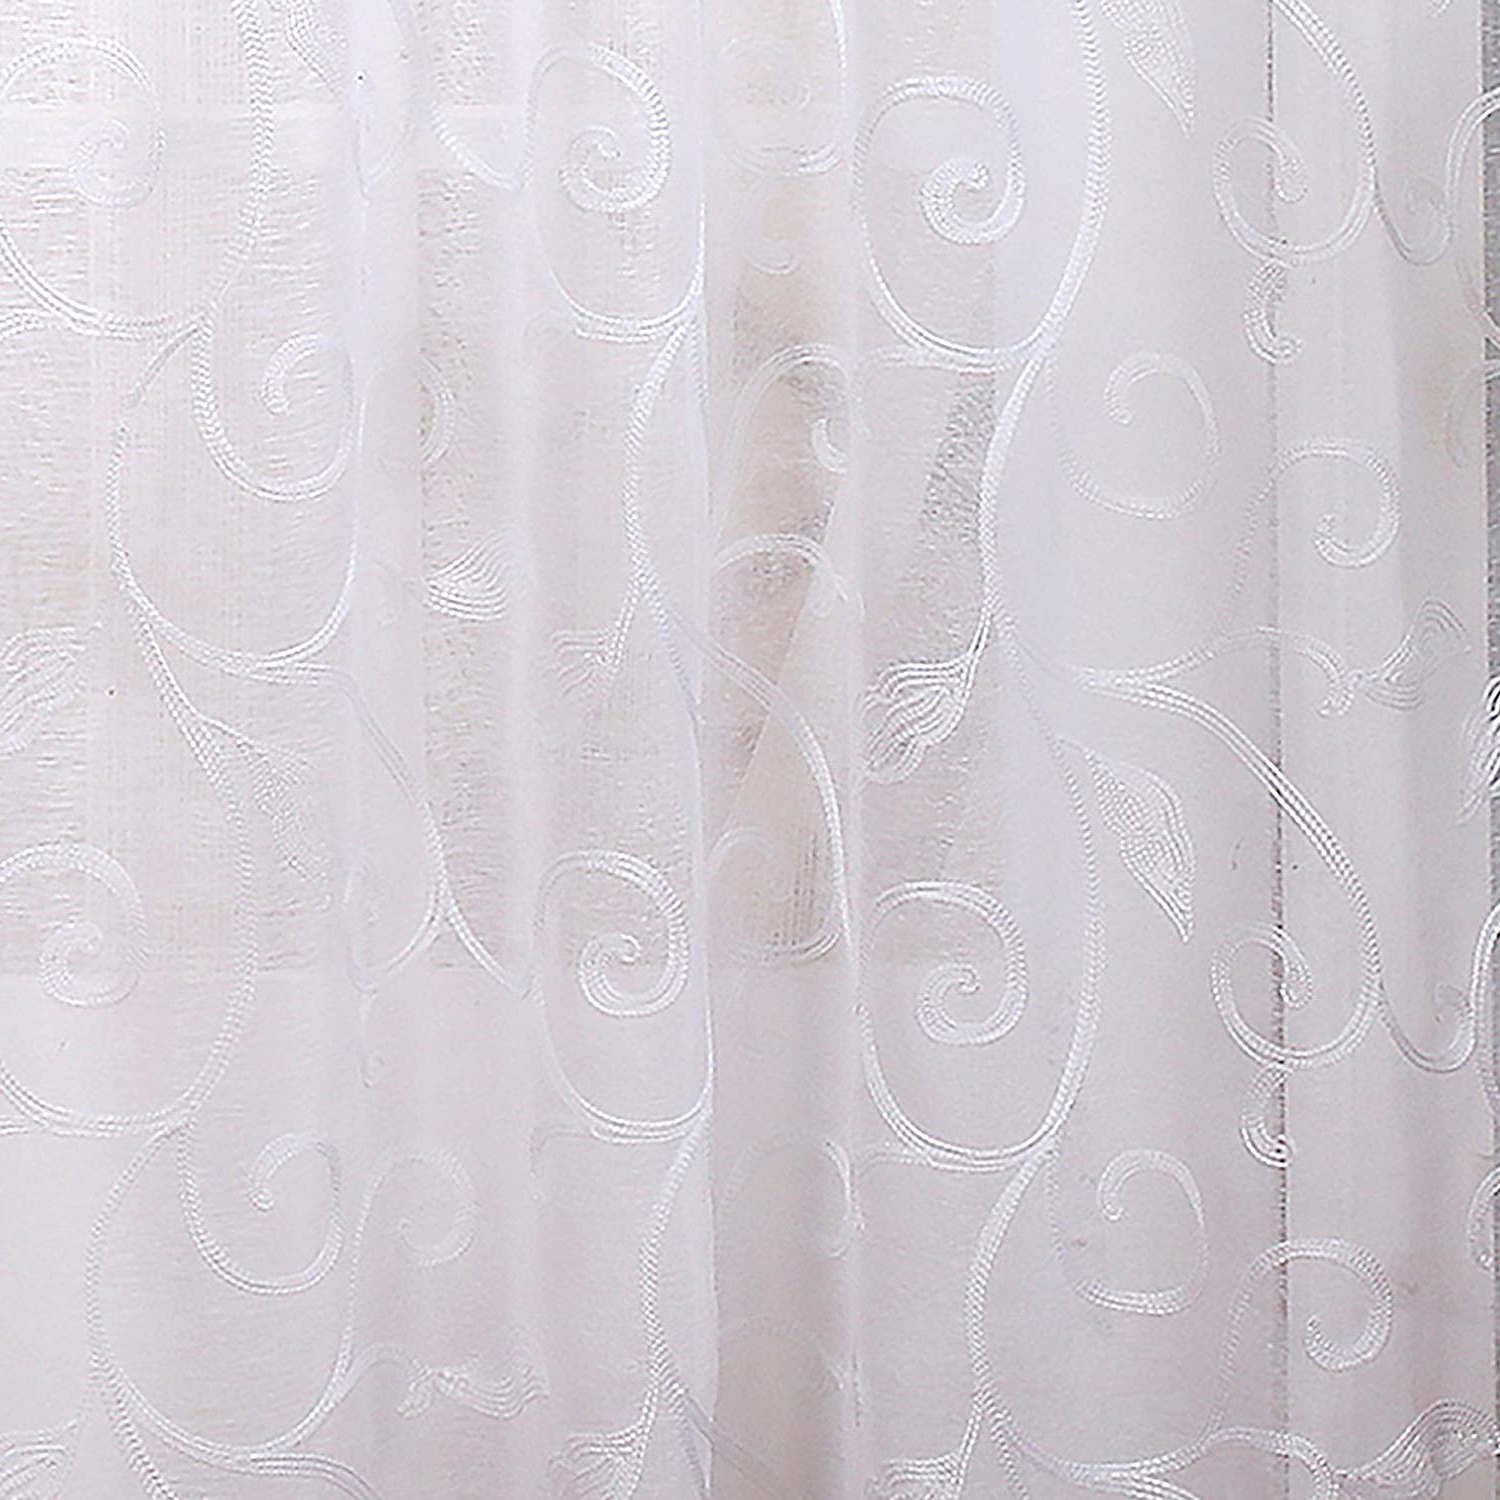 Overseas Leaf Swirl Embroidered Curtain Panel Pairs Throughout Widely Used Eluxurysupply 2 Pack 37 X 84 Inch Embroidered Sheet Panel Curtains Gray (View 21 of 21)